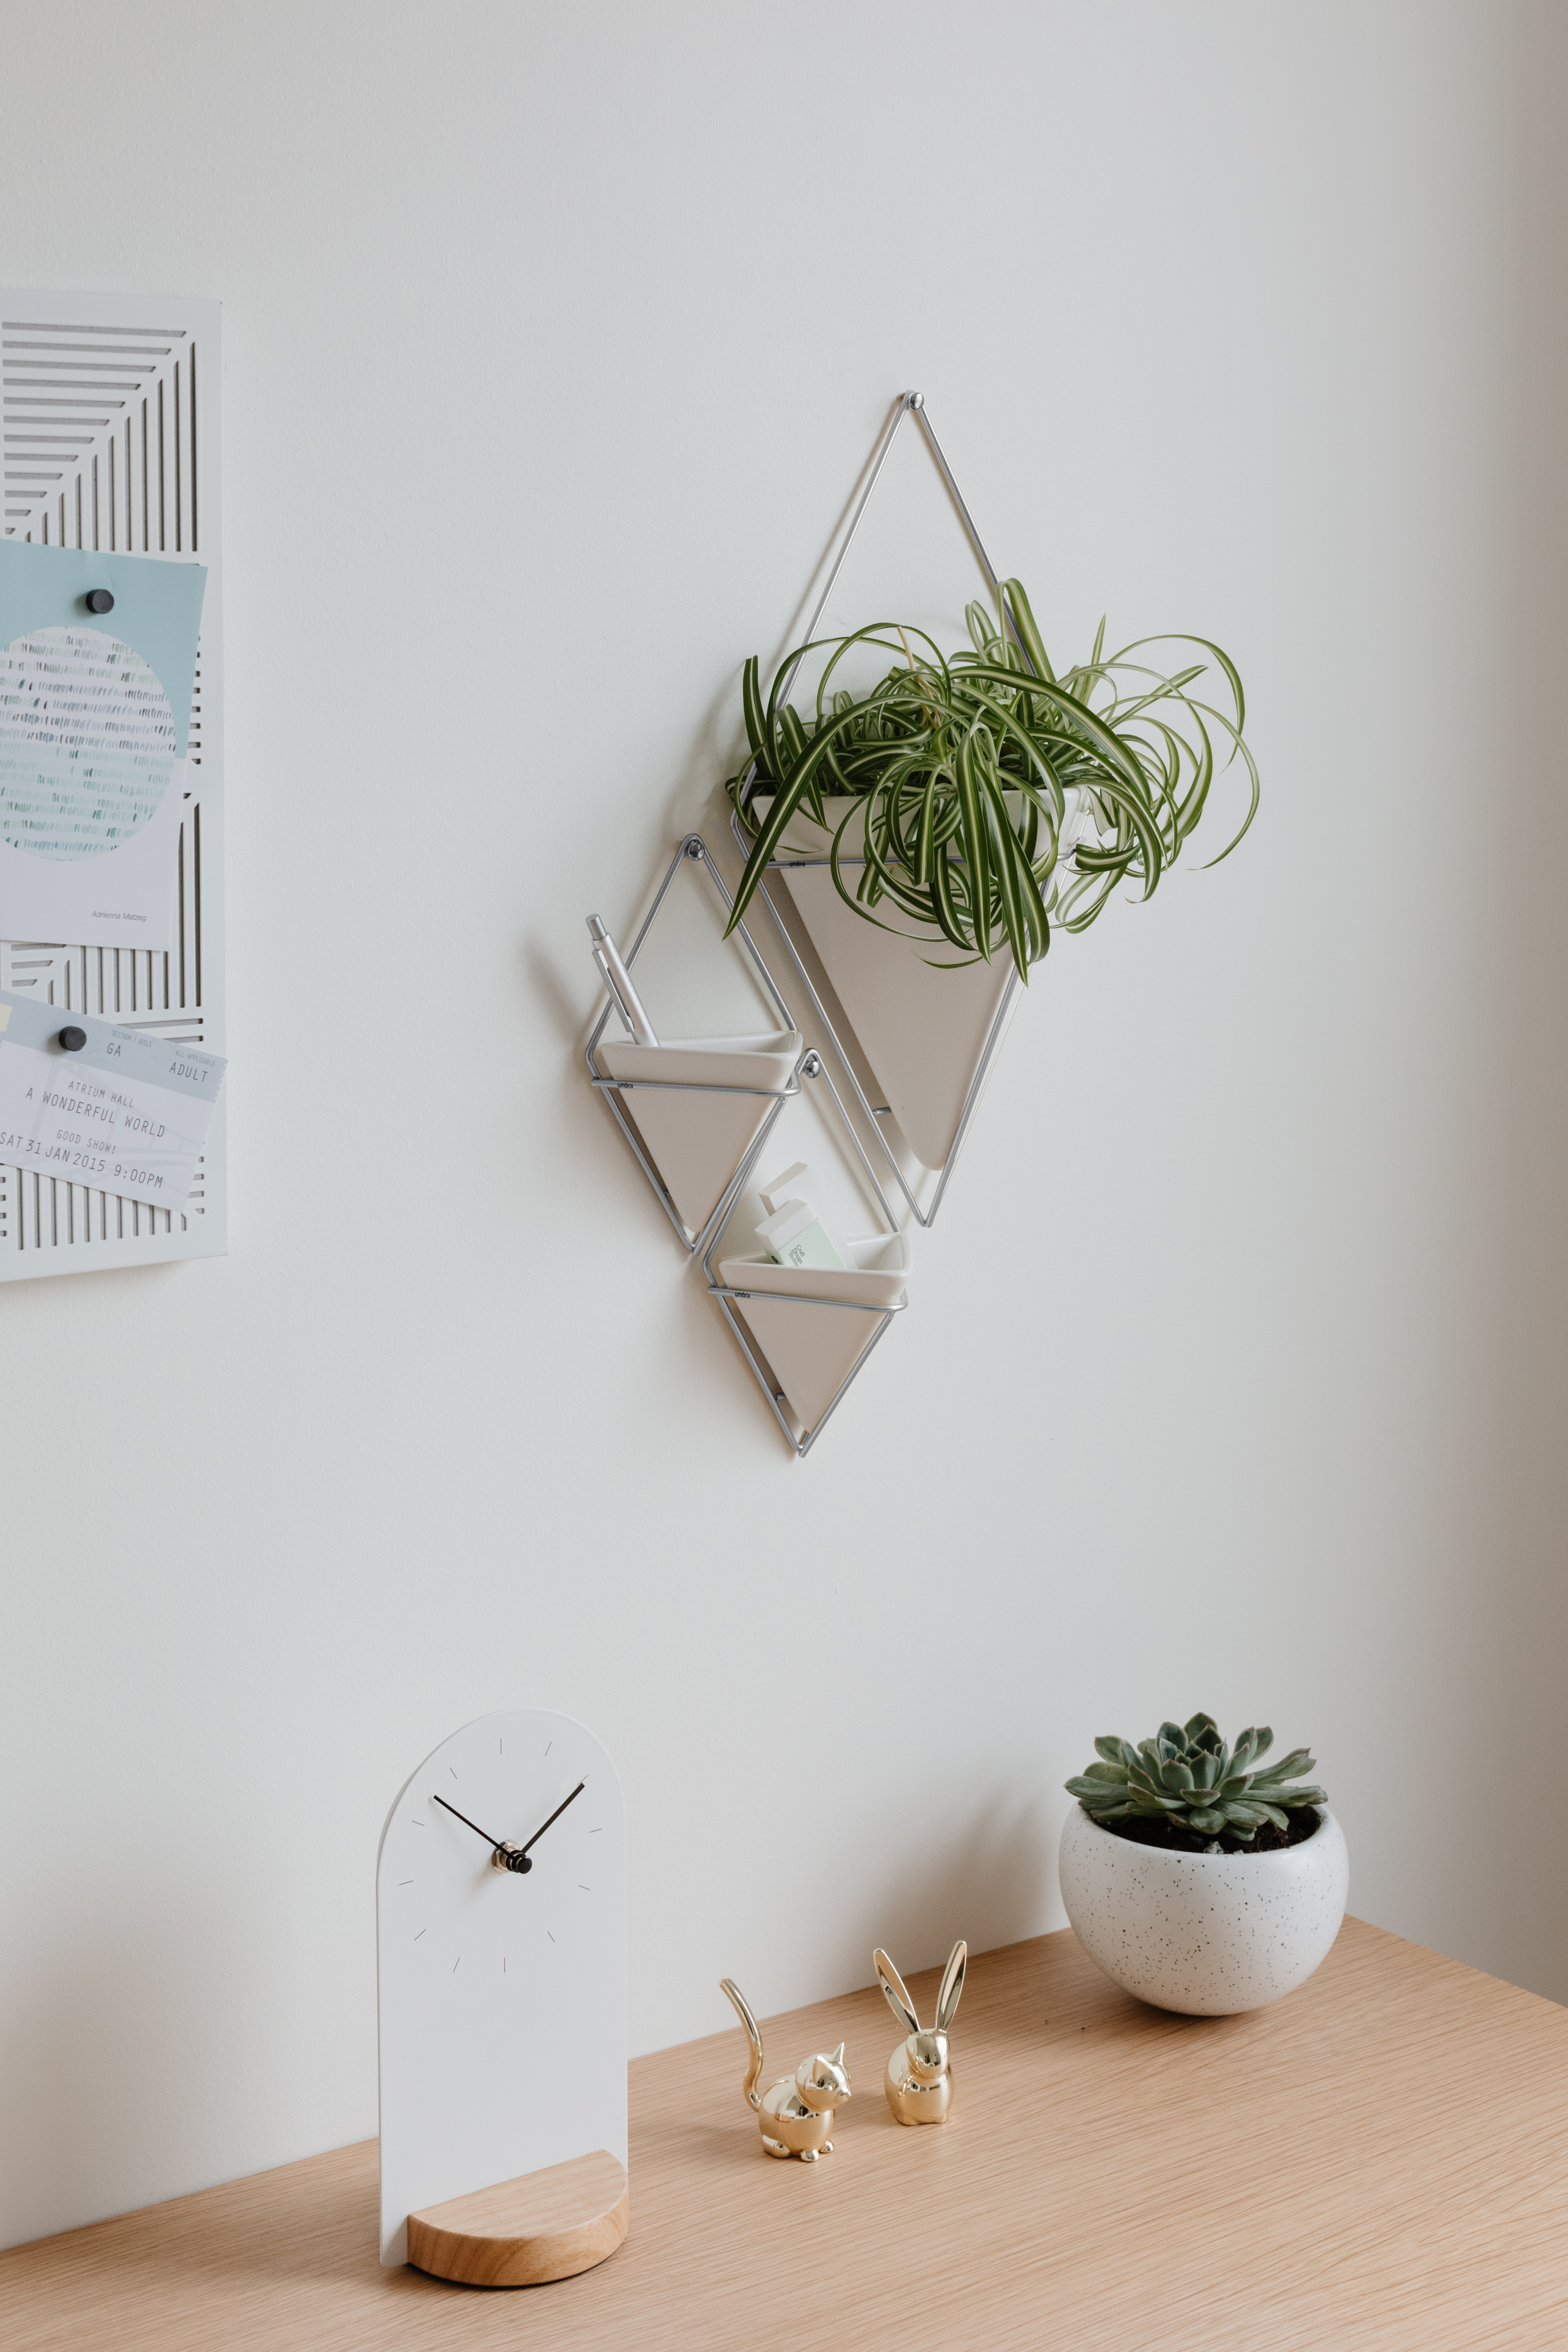 2020 Trigg Hanging Planter Vase & Geometric Wall Decor Container – Great With Regard To 2 Piece Trigg Wall Decor Sets (Set Of 2) (View 3 of 20)